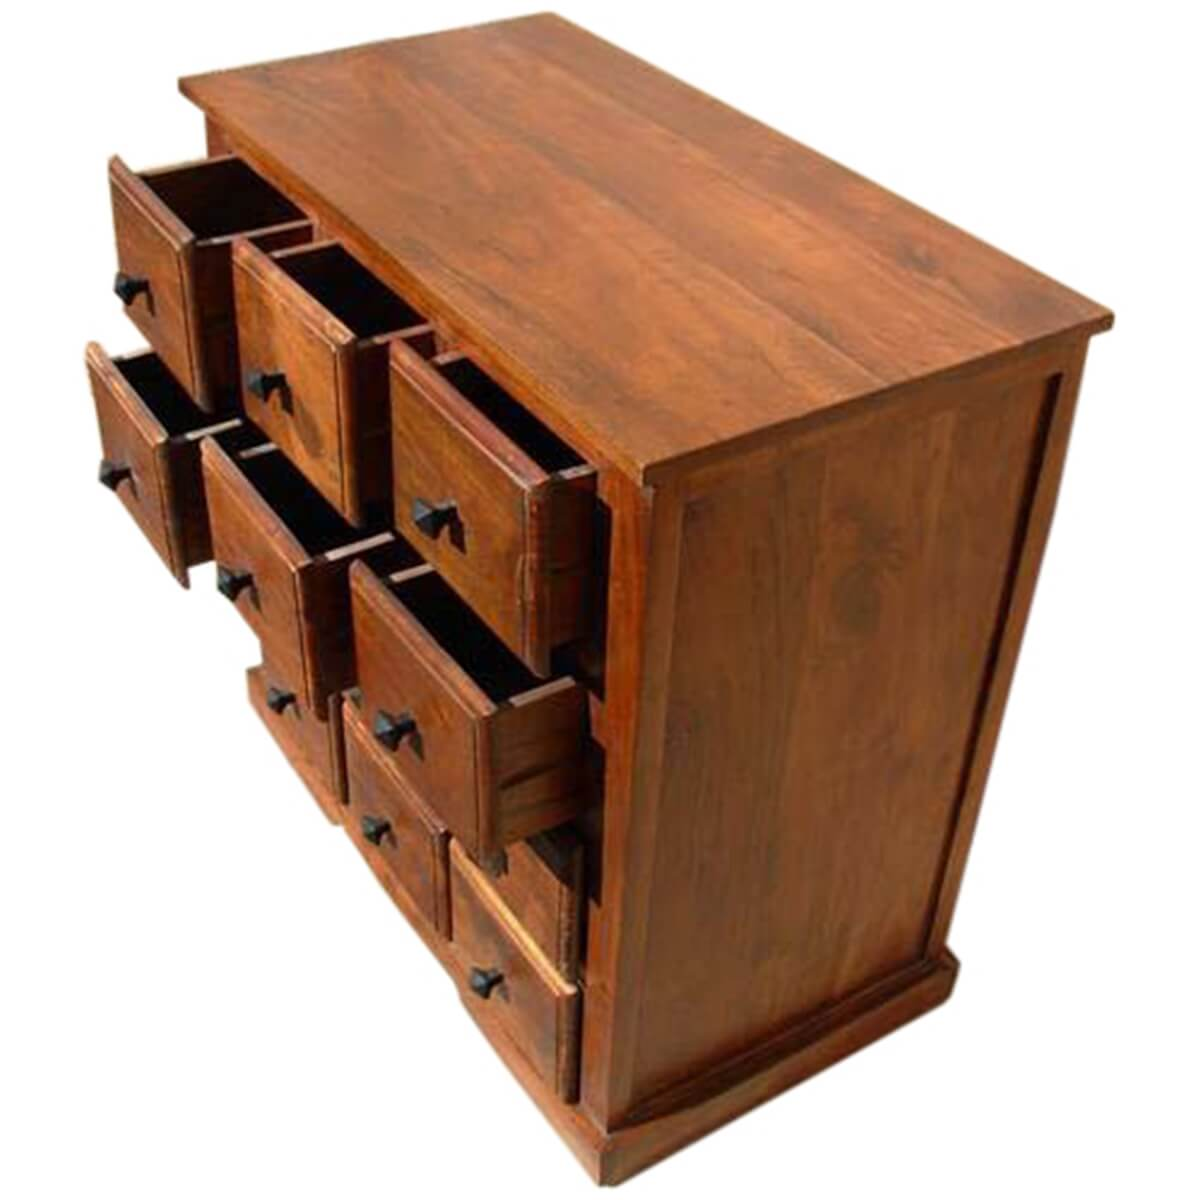 Handmade Wooden Bedroom Storage Dresser Chest With 12 Drawers